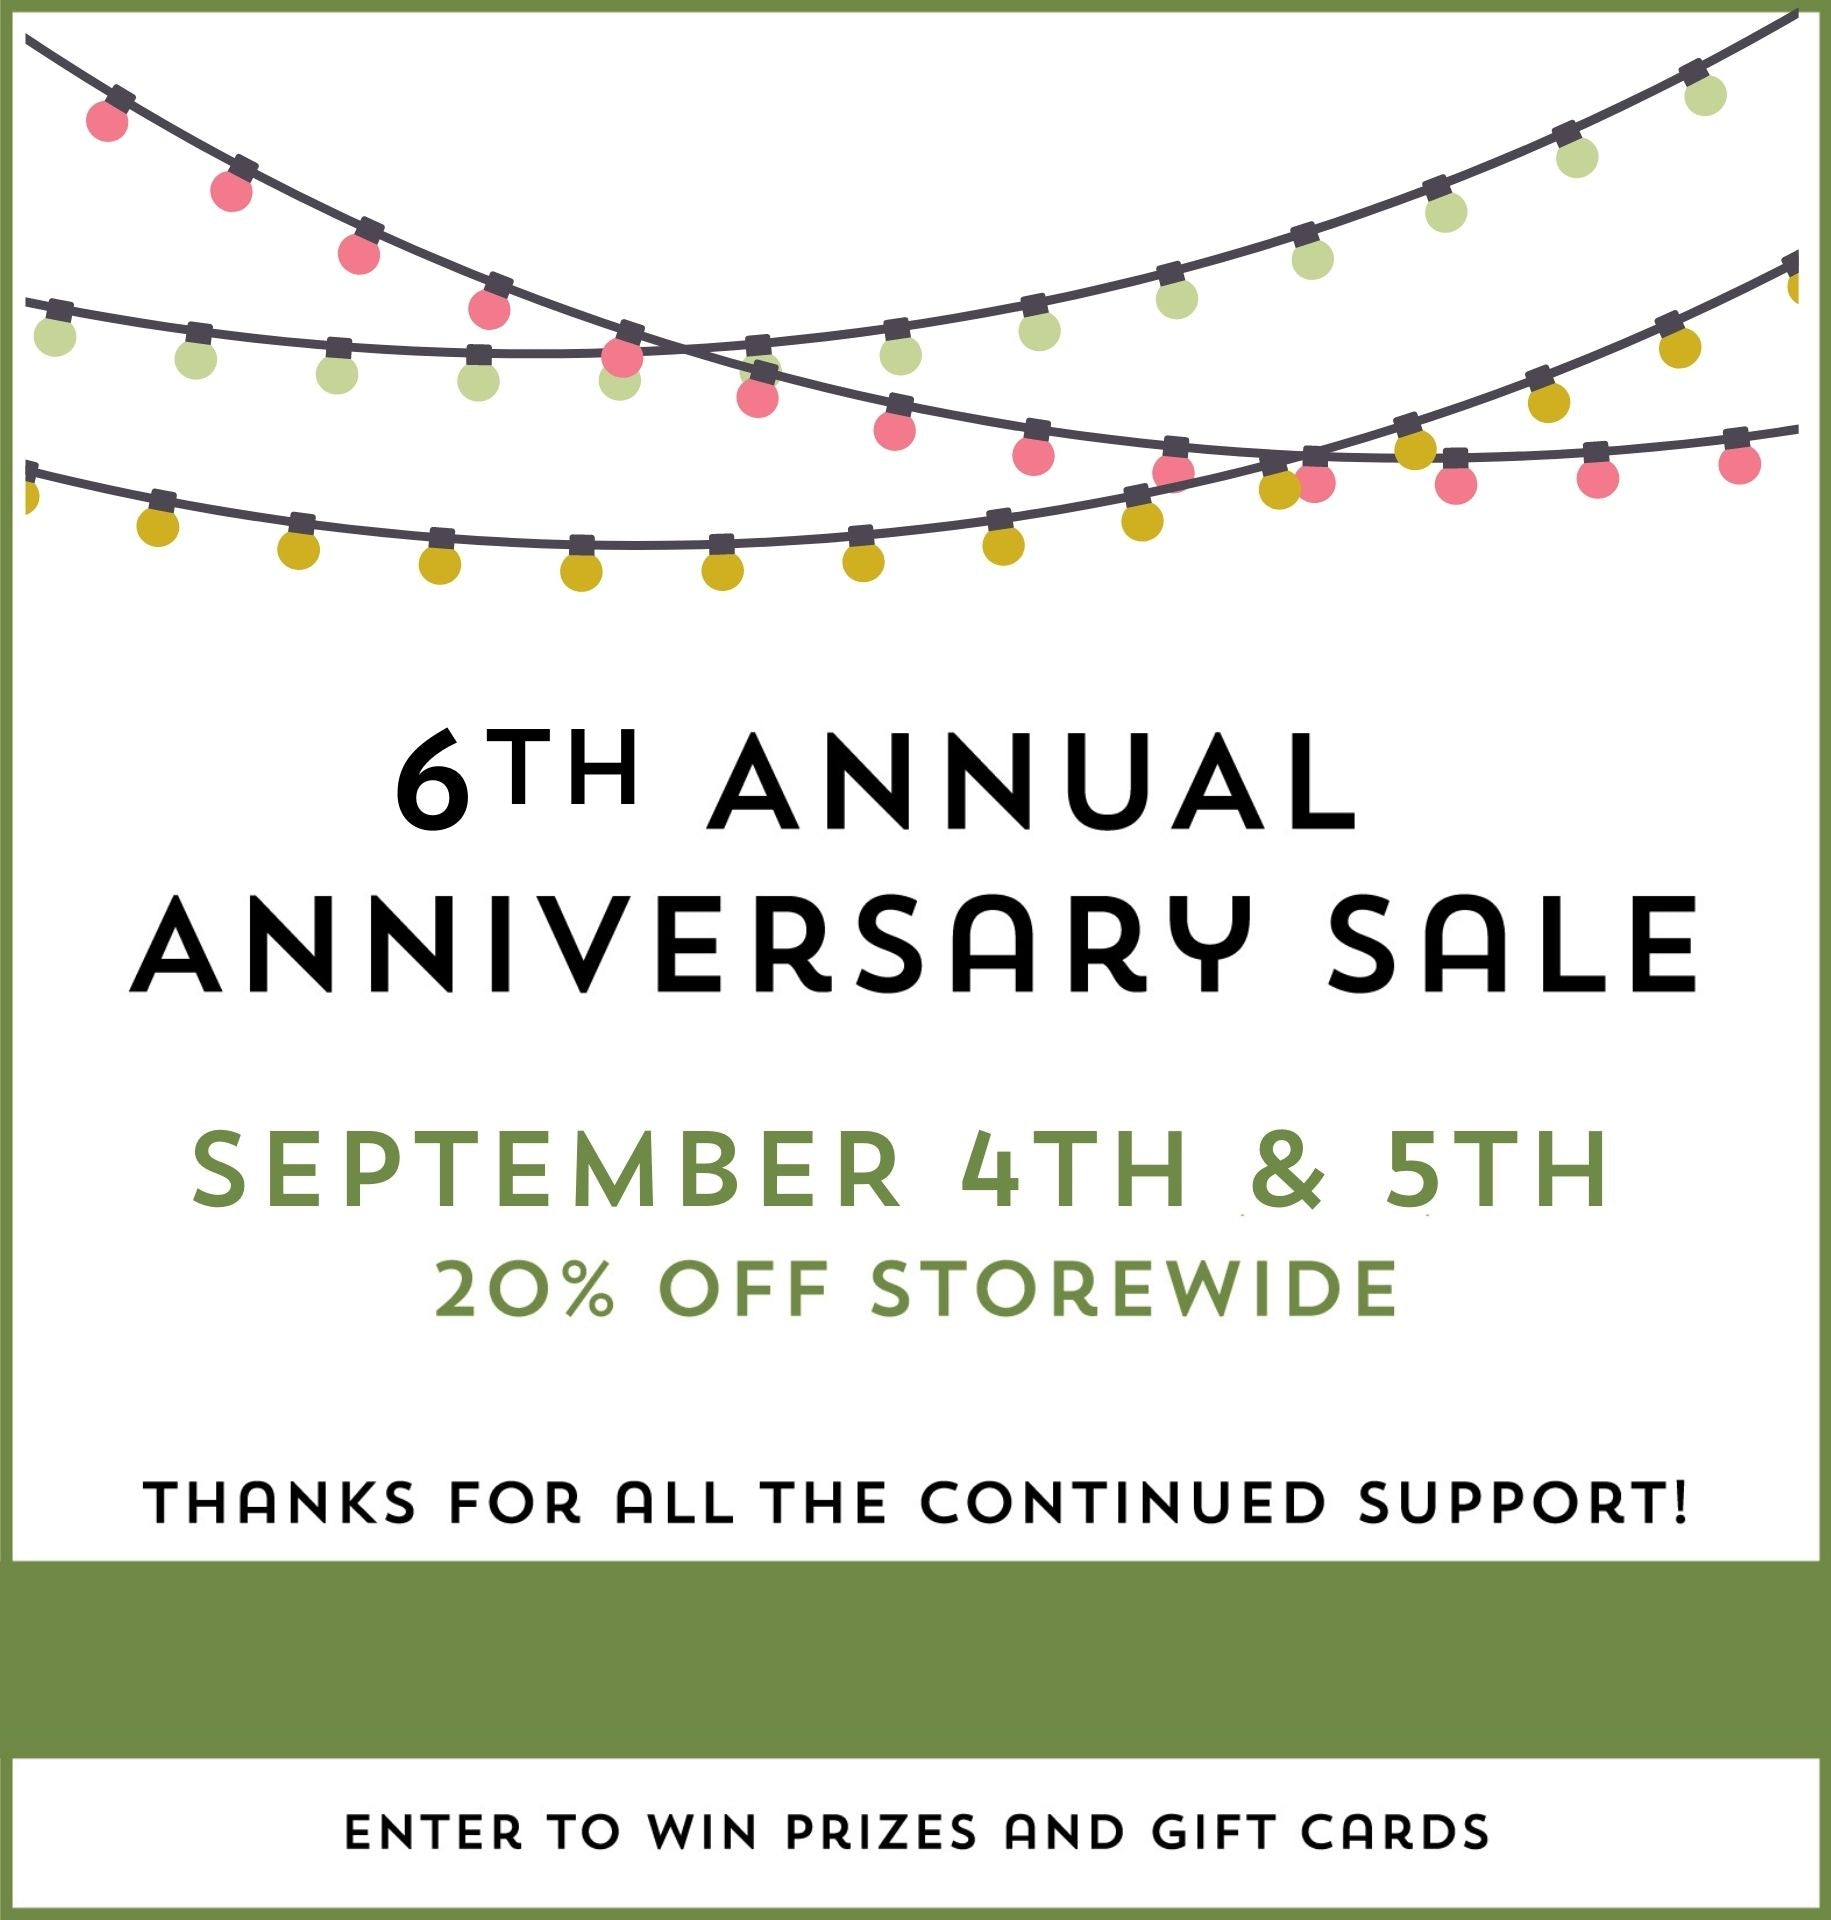 20% OFF Store-wide Anniversary Sale September 4th and 5th!